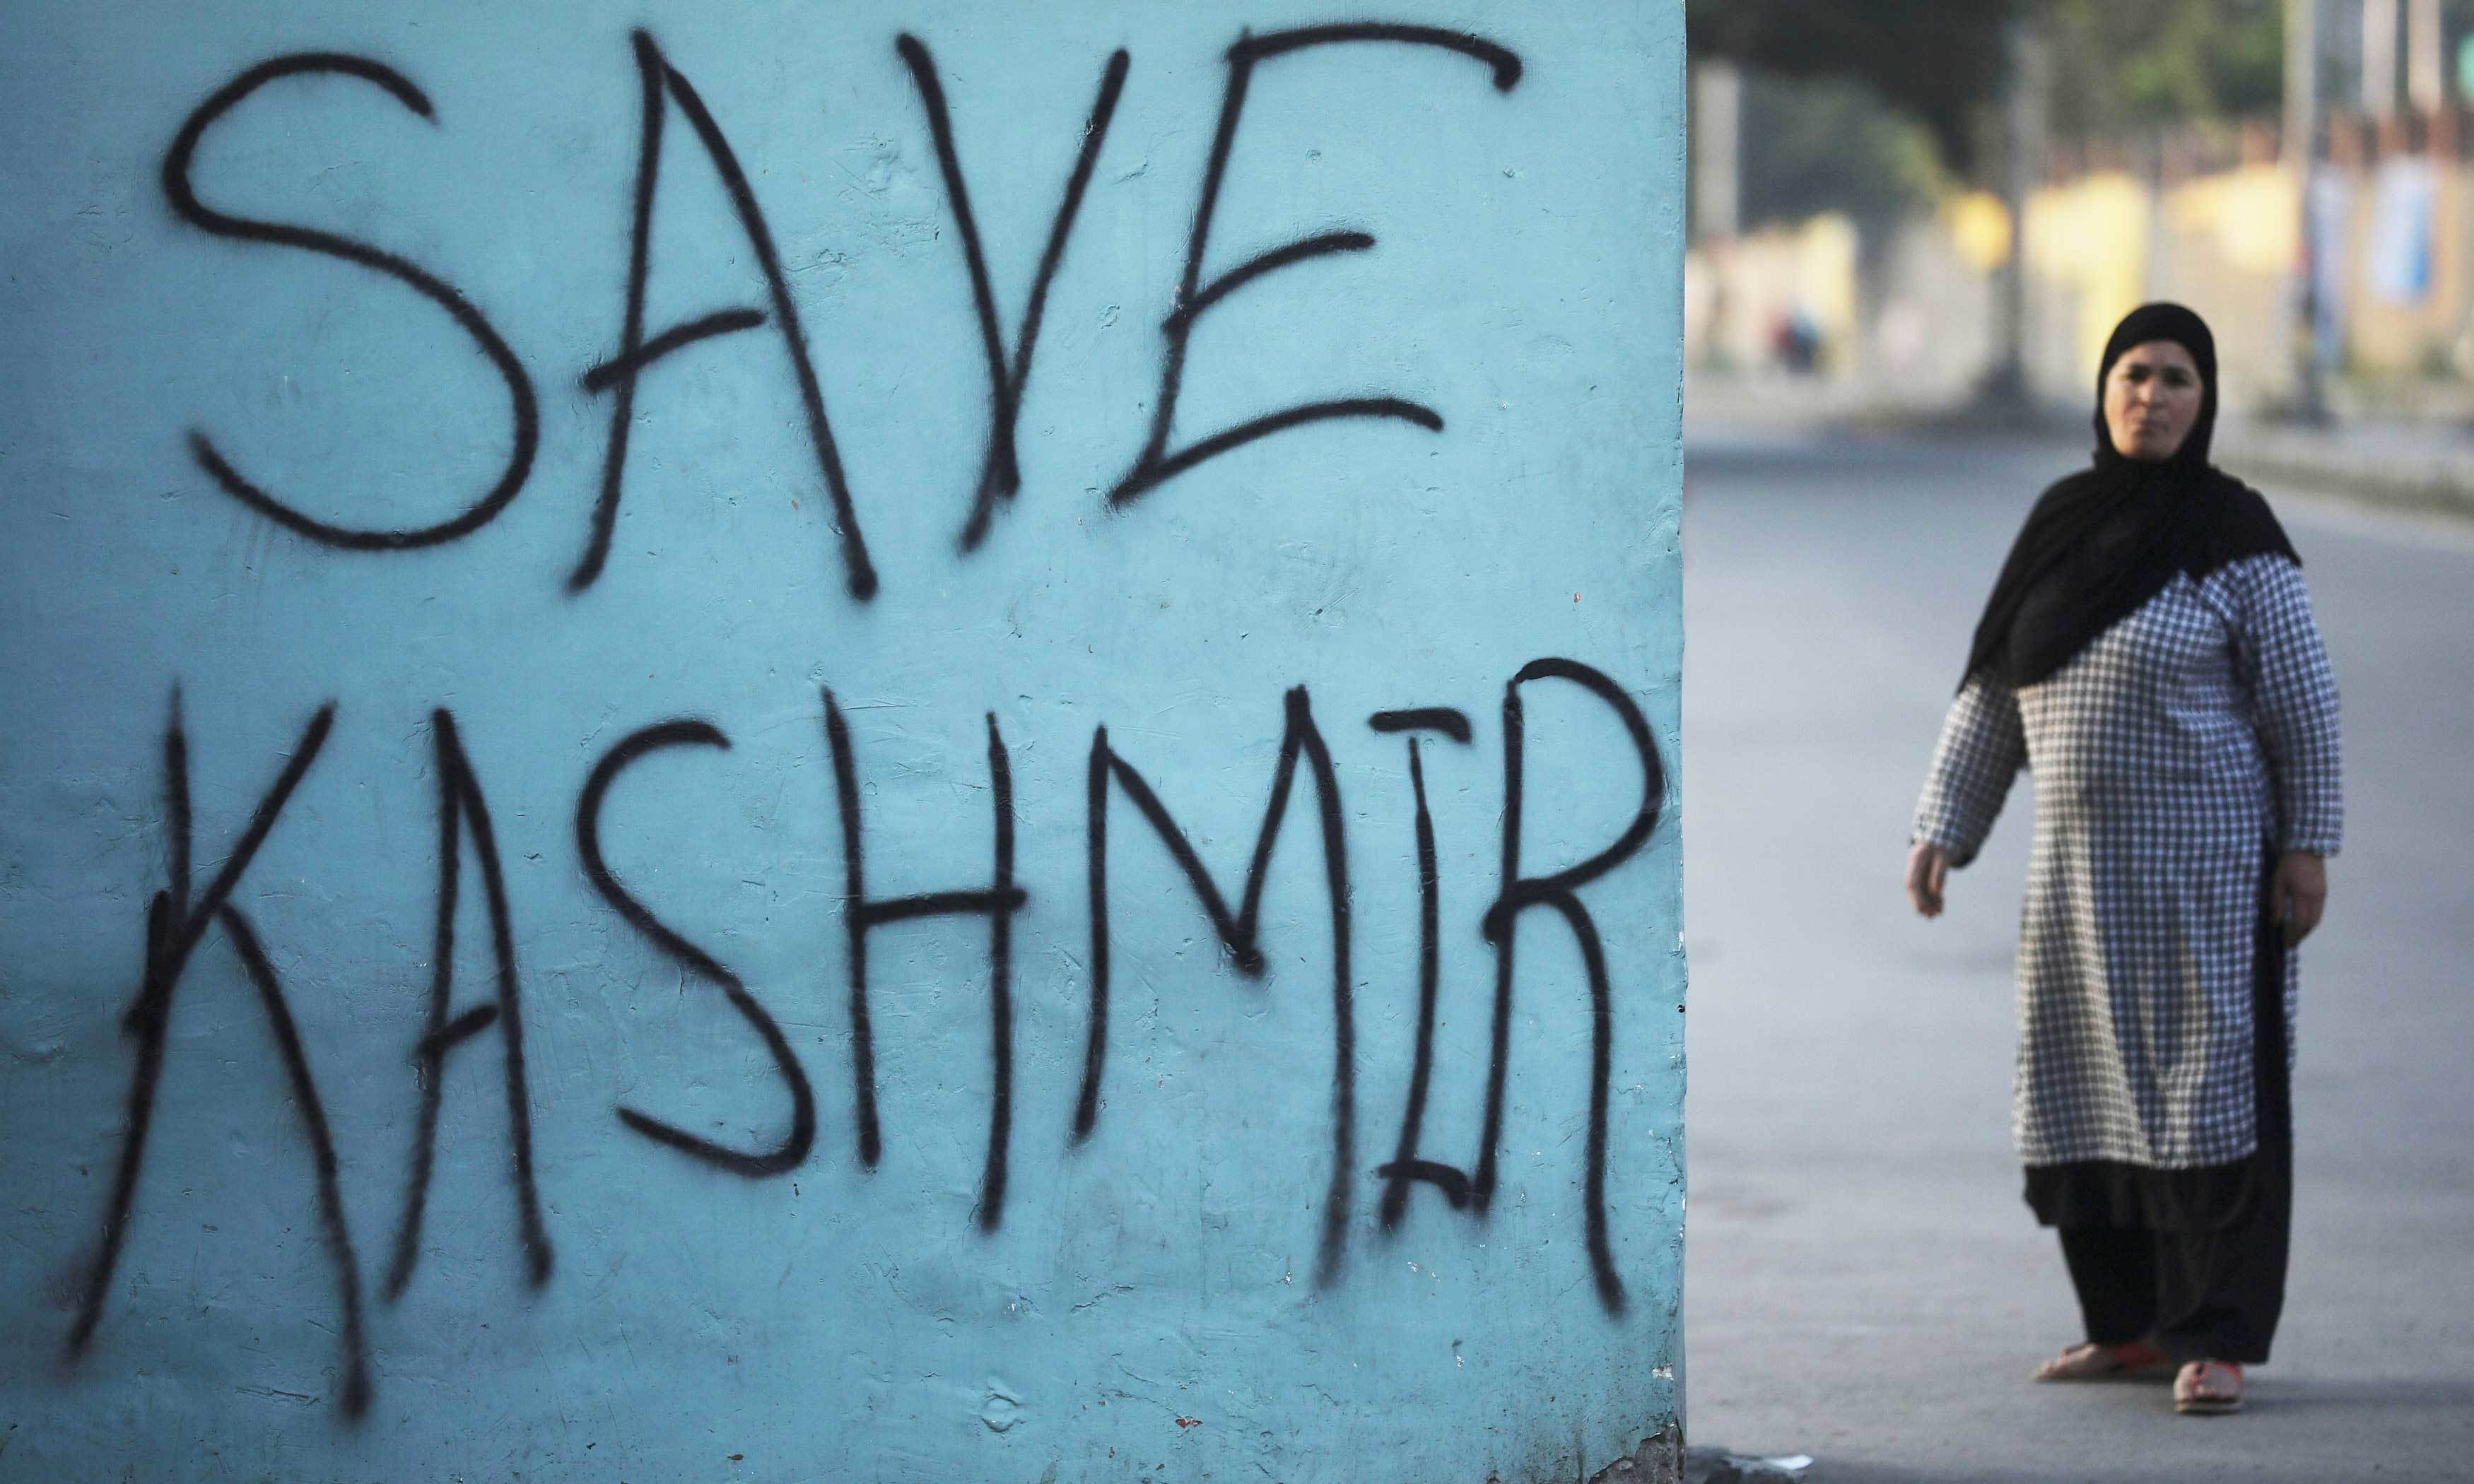 A Kashmiri woman stands next to a graffiti written on a wall during restrictions, in Srinagar, September 15. — Reuters